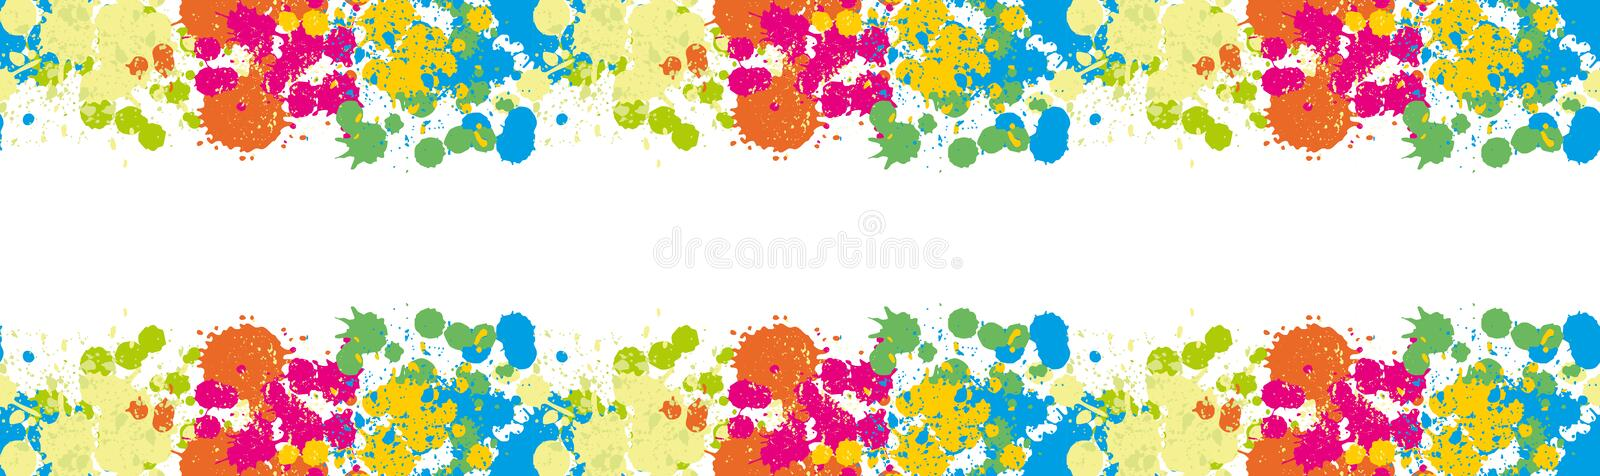 Blue Spot Green Stain Pink Smudge Orange Blot Yellow Smear Dab and blotch seamless wallpaper Blur Border Colored blots on the whit. E background vector illustration